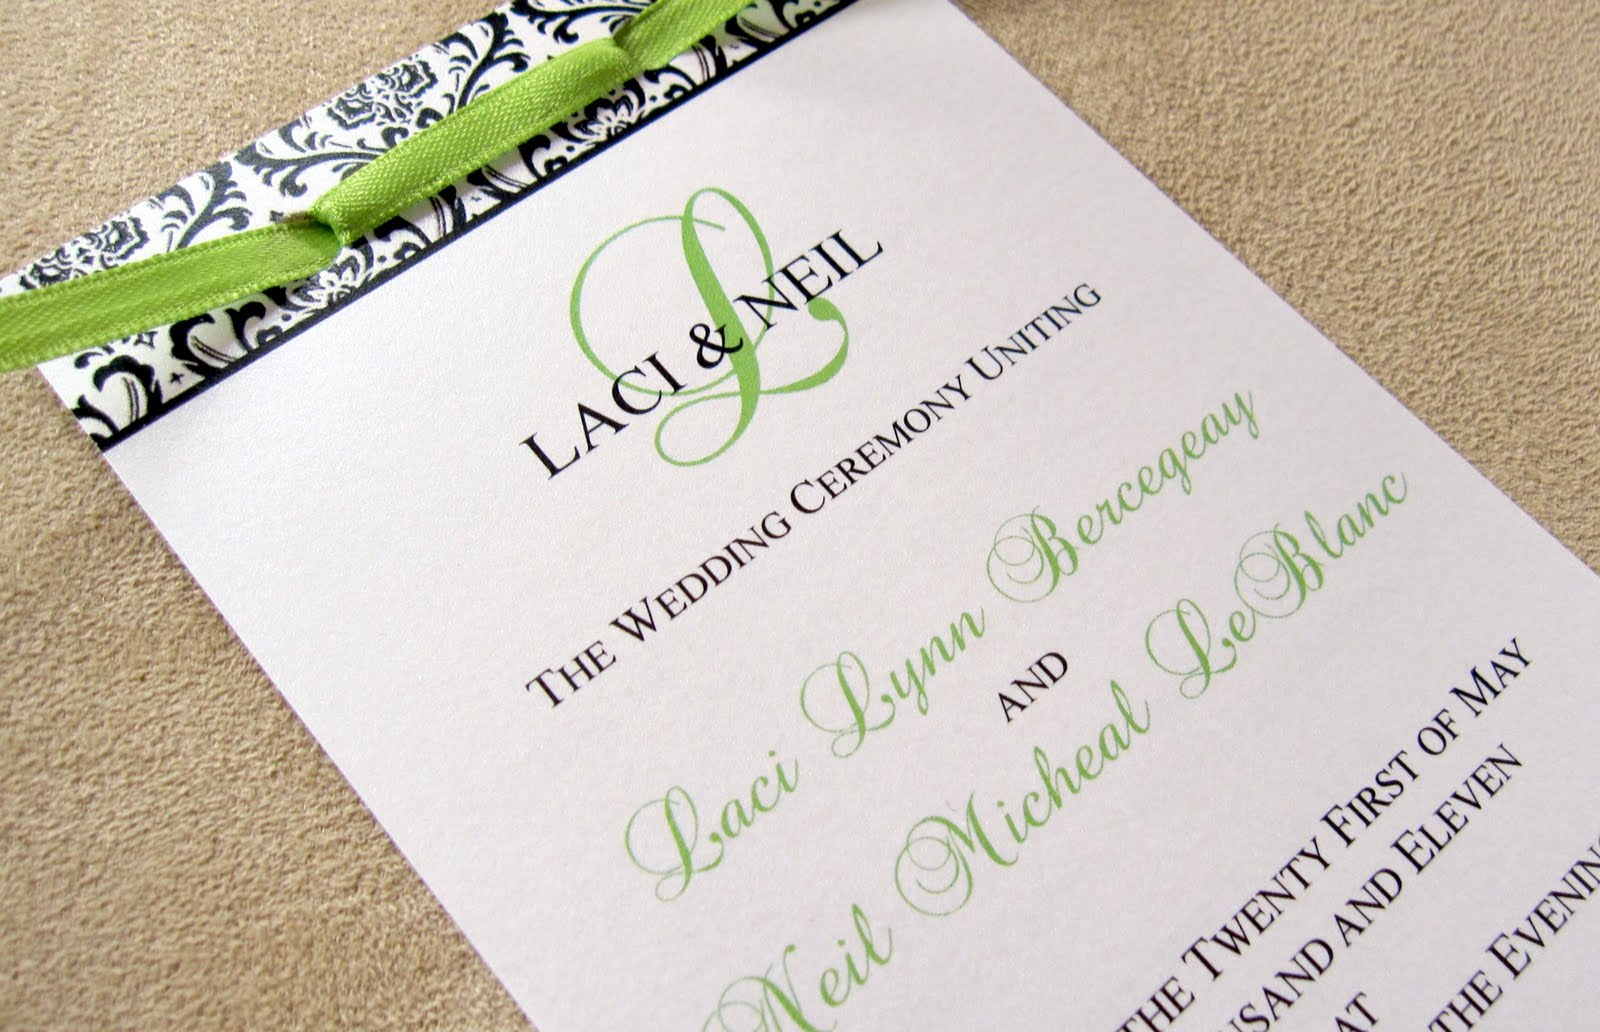 scrapping innovations laci and neil layered wedding programs